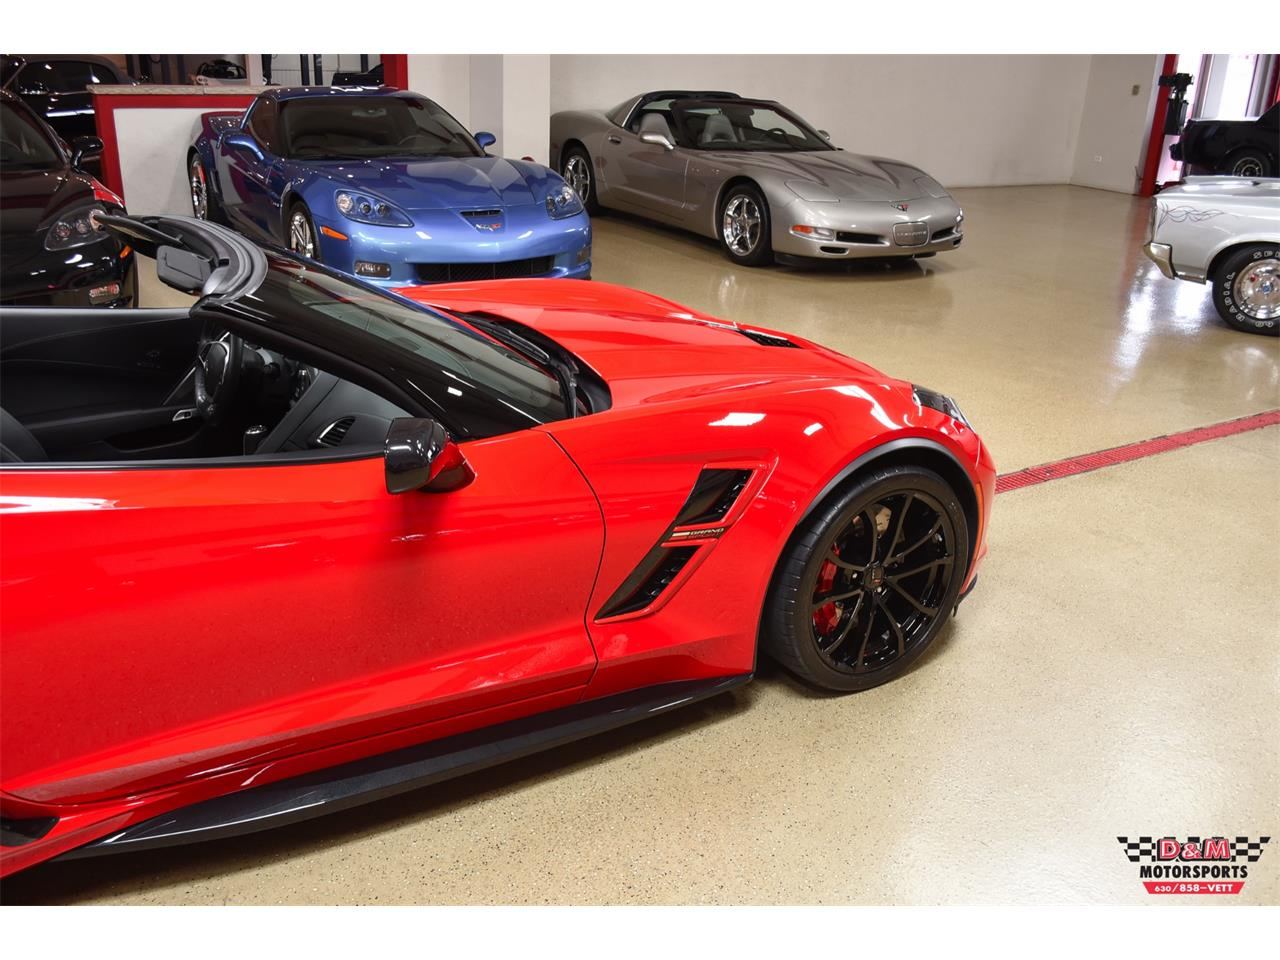 Large Picture of '18 Chevrolet Corvette - $61,995.00 Offered by D & M Motorsports - PWM3